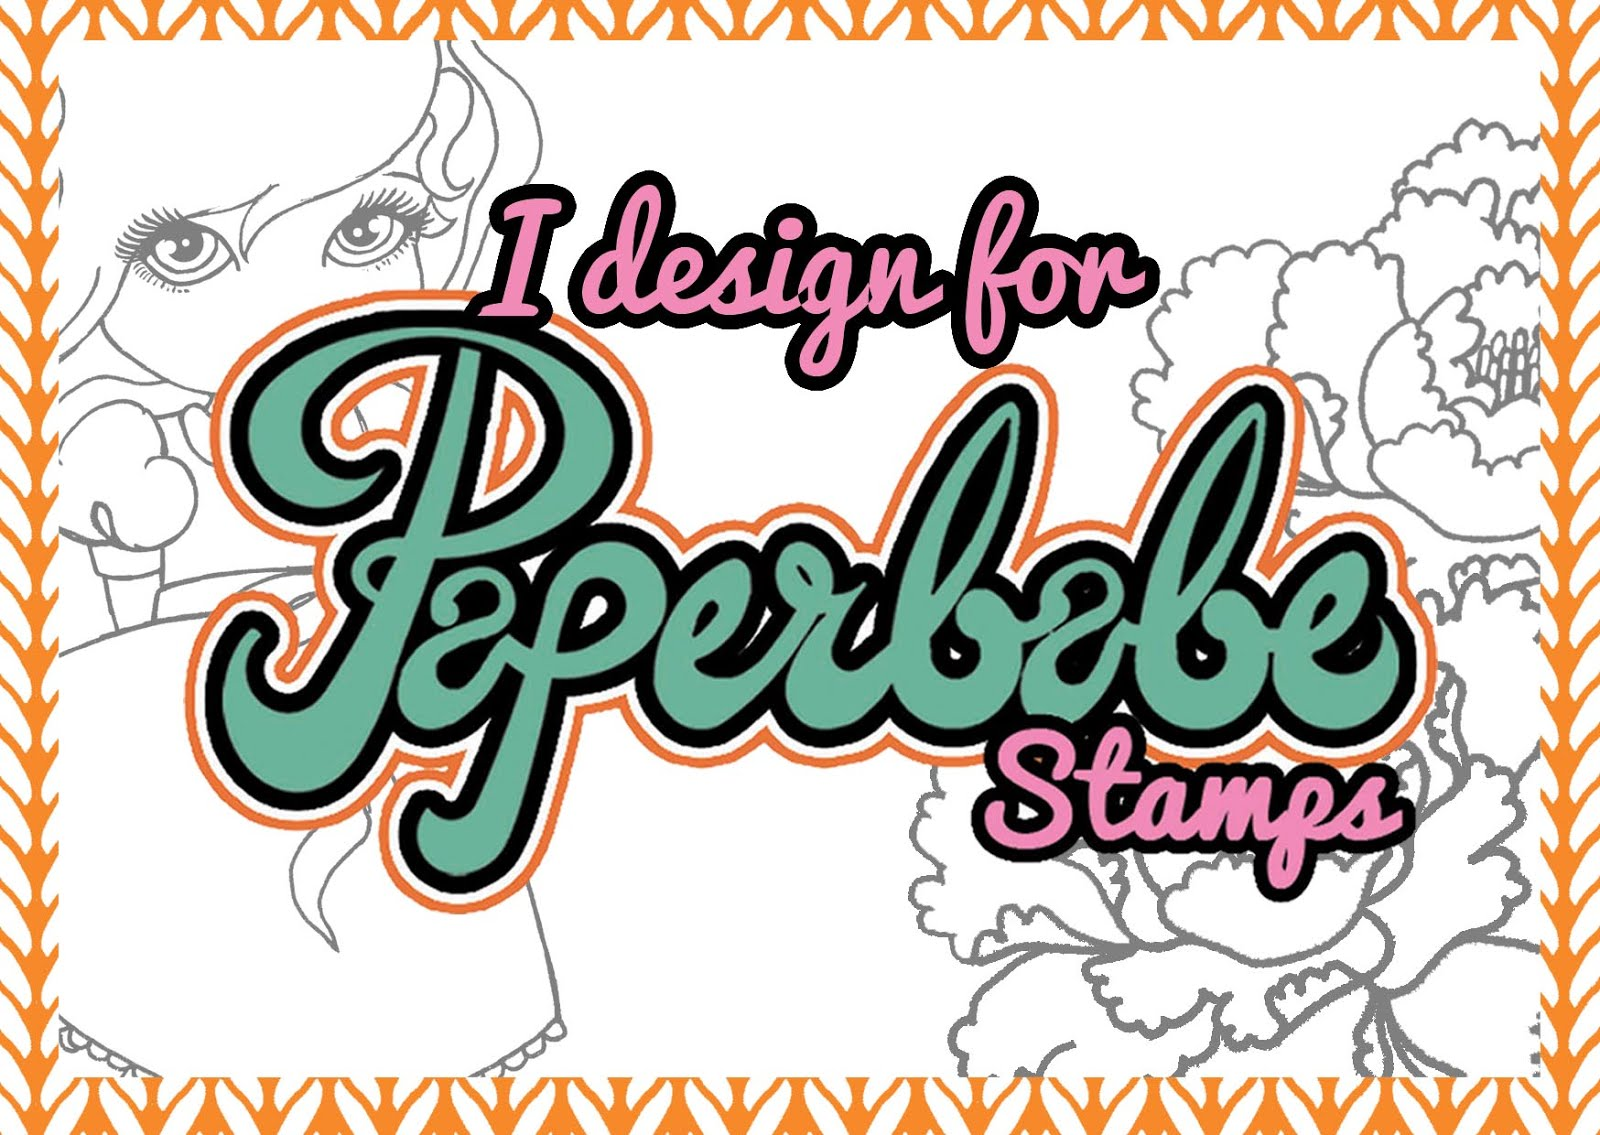 Designer for Paperbabe Stamps